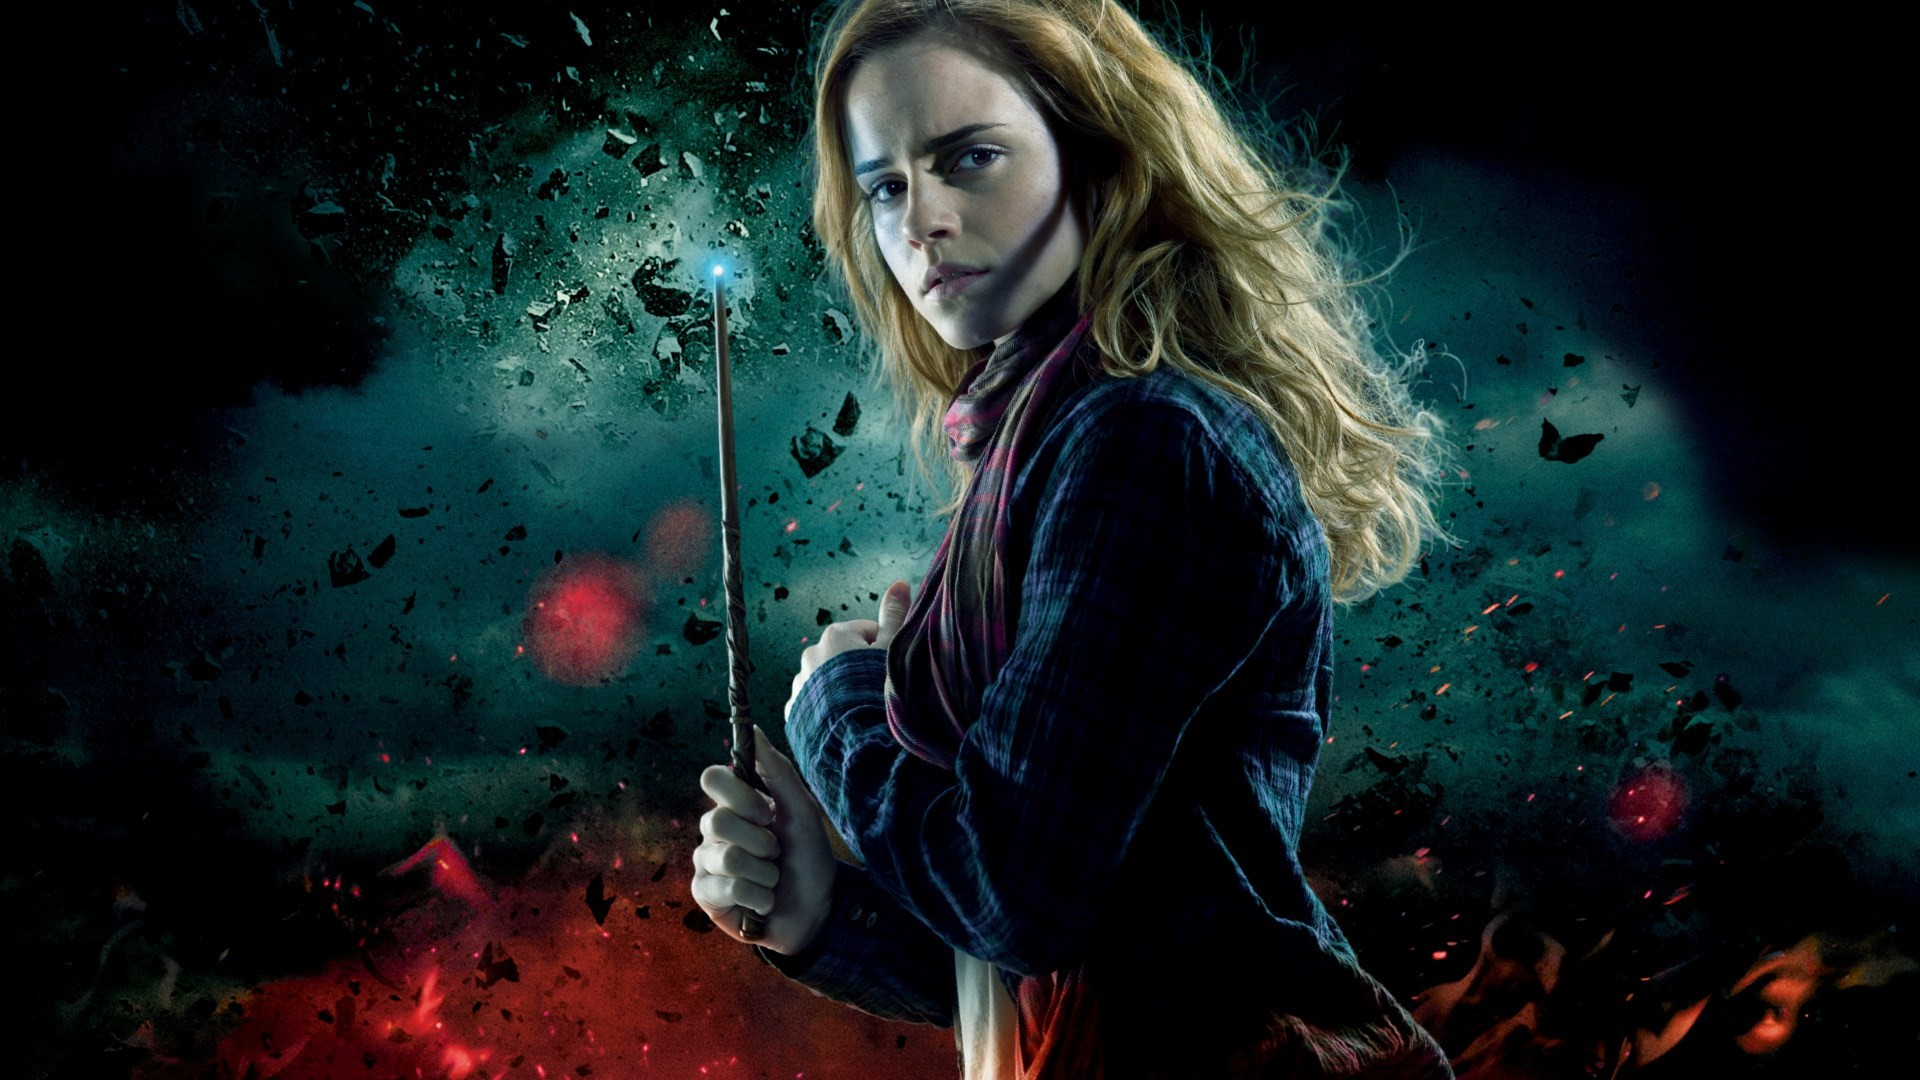 windows wallpaper harry potter and the deathly hallows part 2